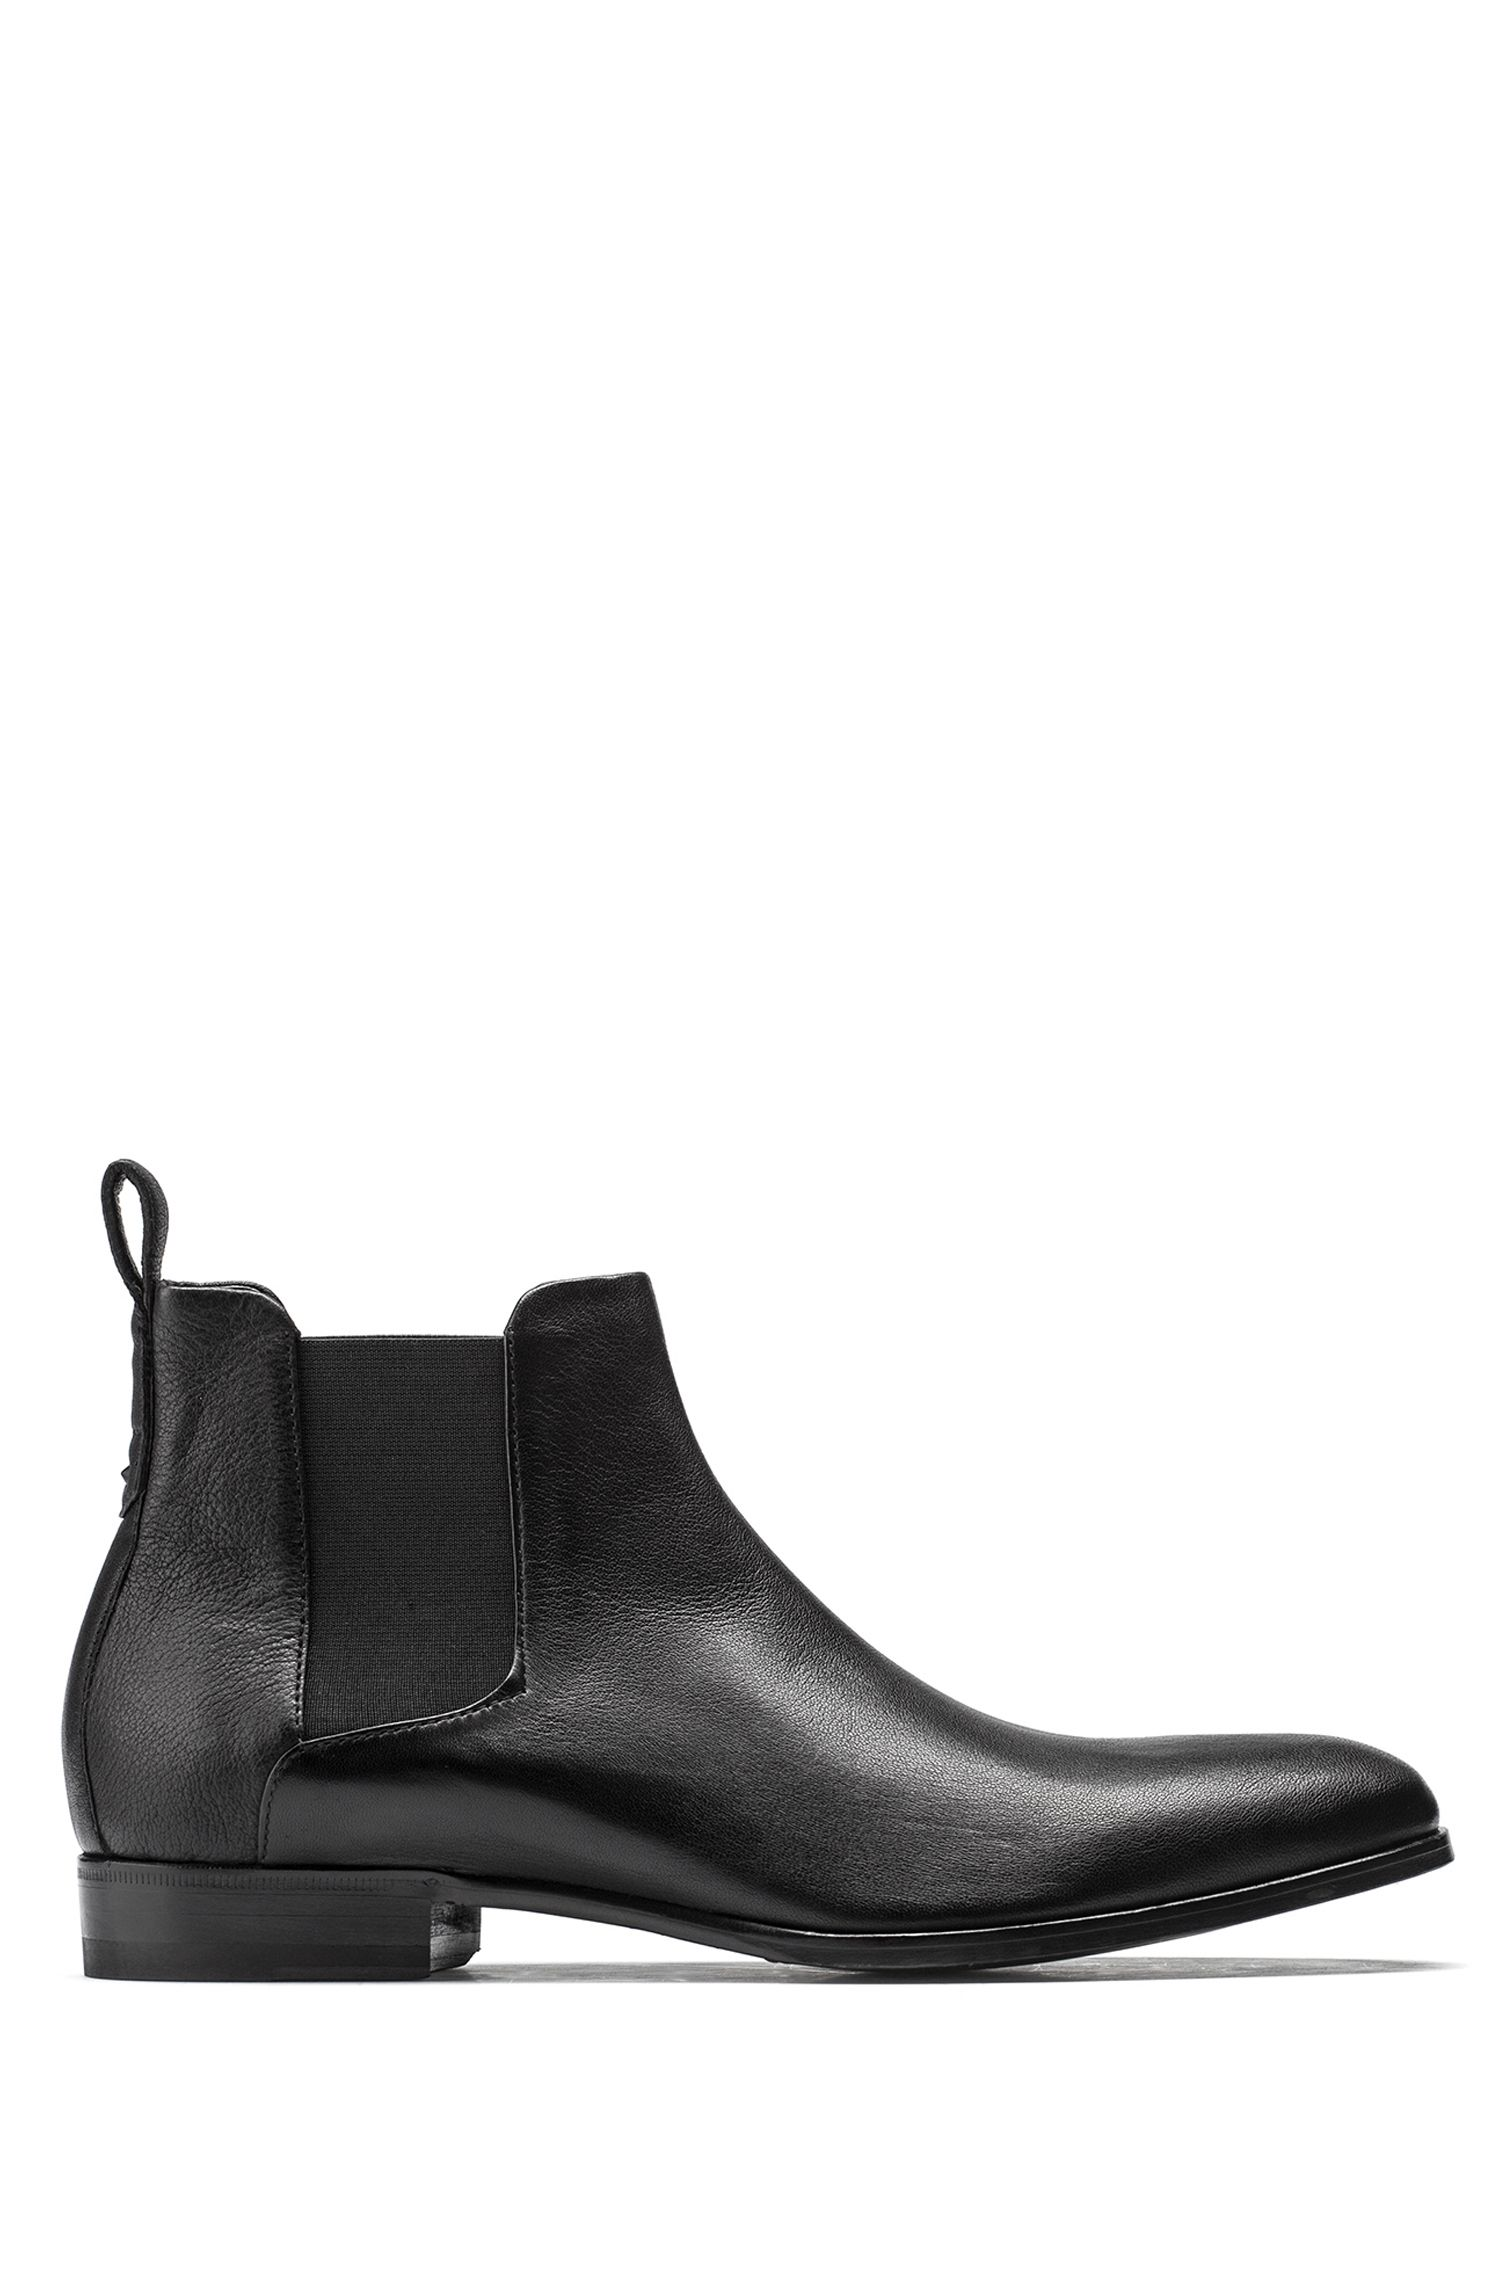 Chelsea boots in grained leather with a distinctive heel